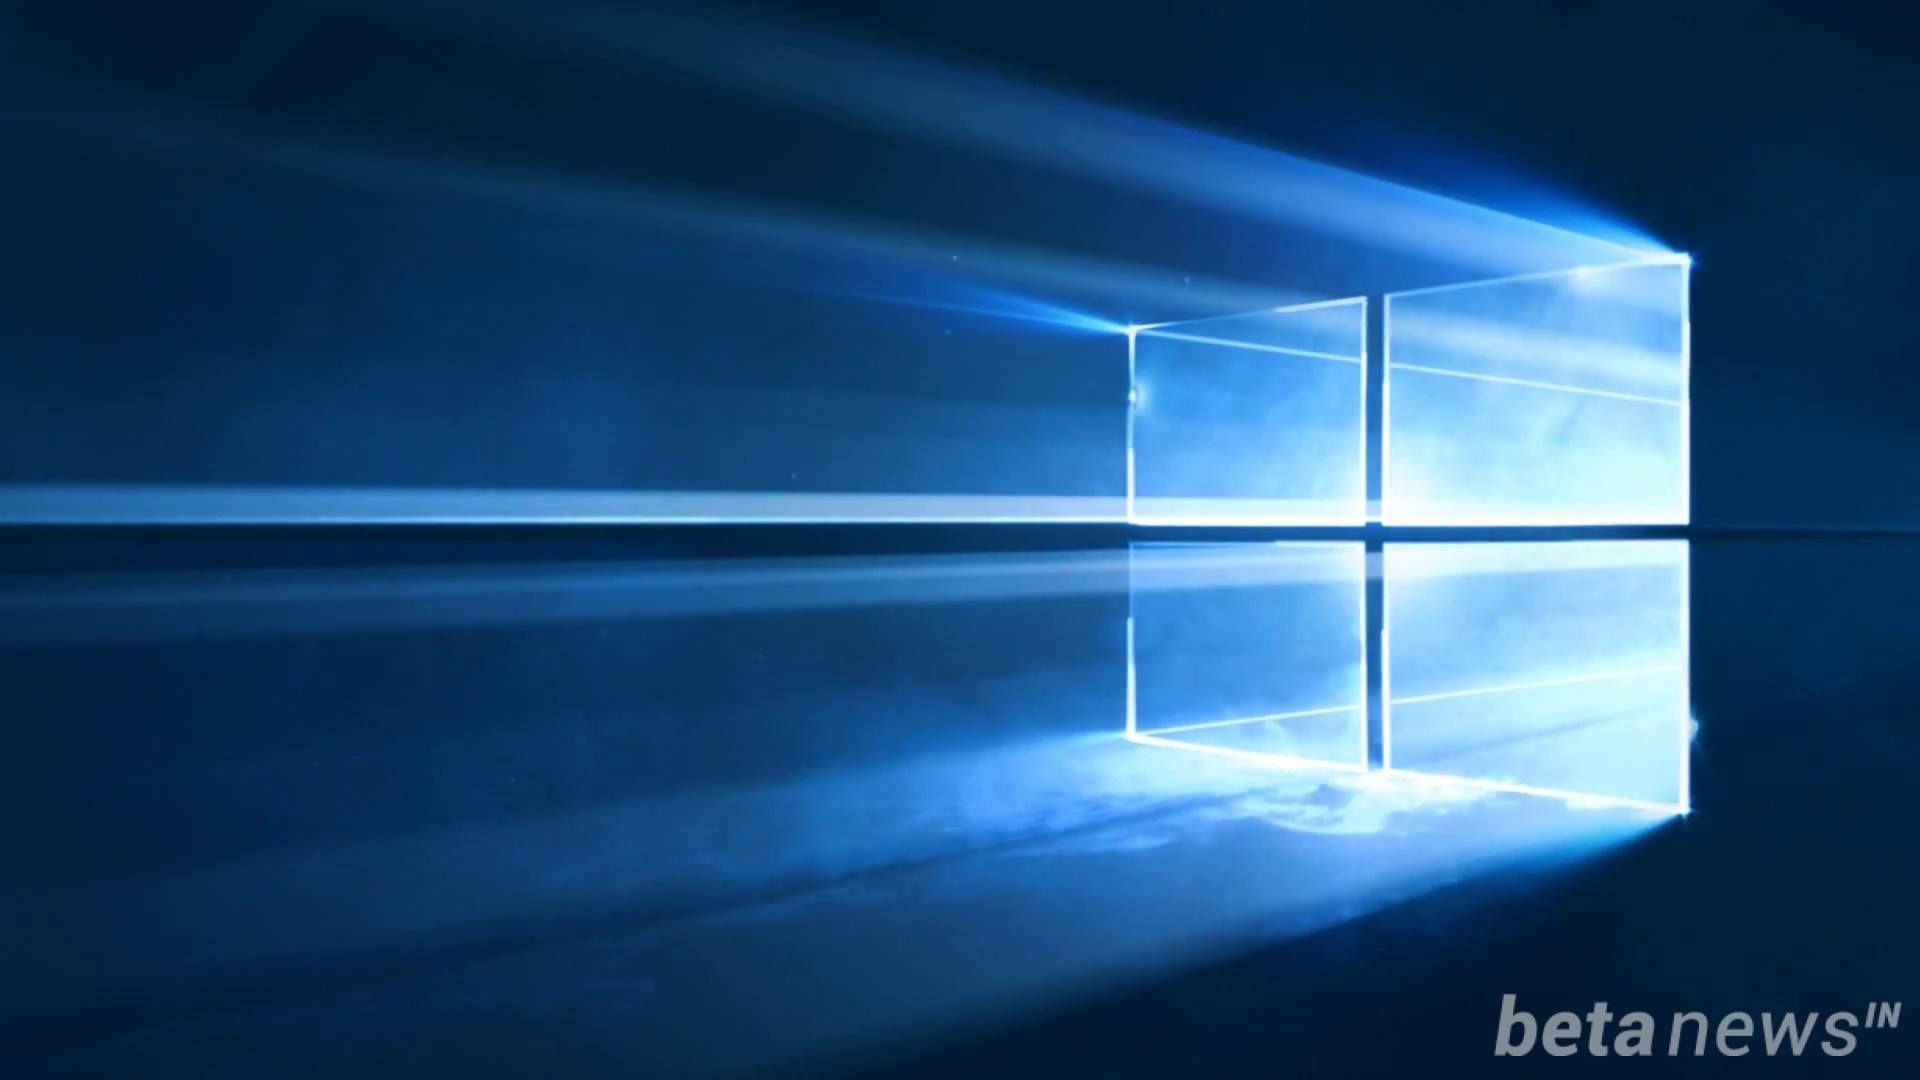 Stock Images Users Download Windows 10 Wallpapers Pack 18 Win 10 Wallpapers